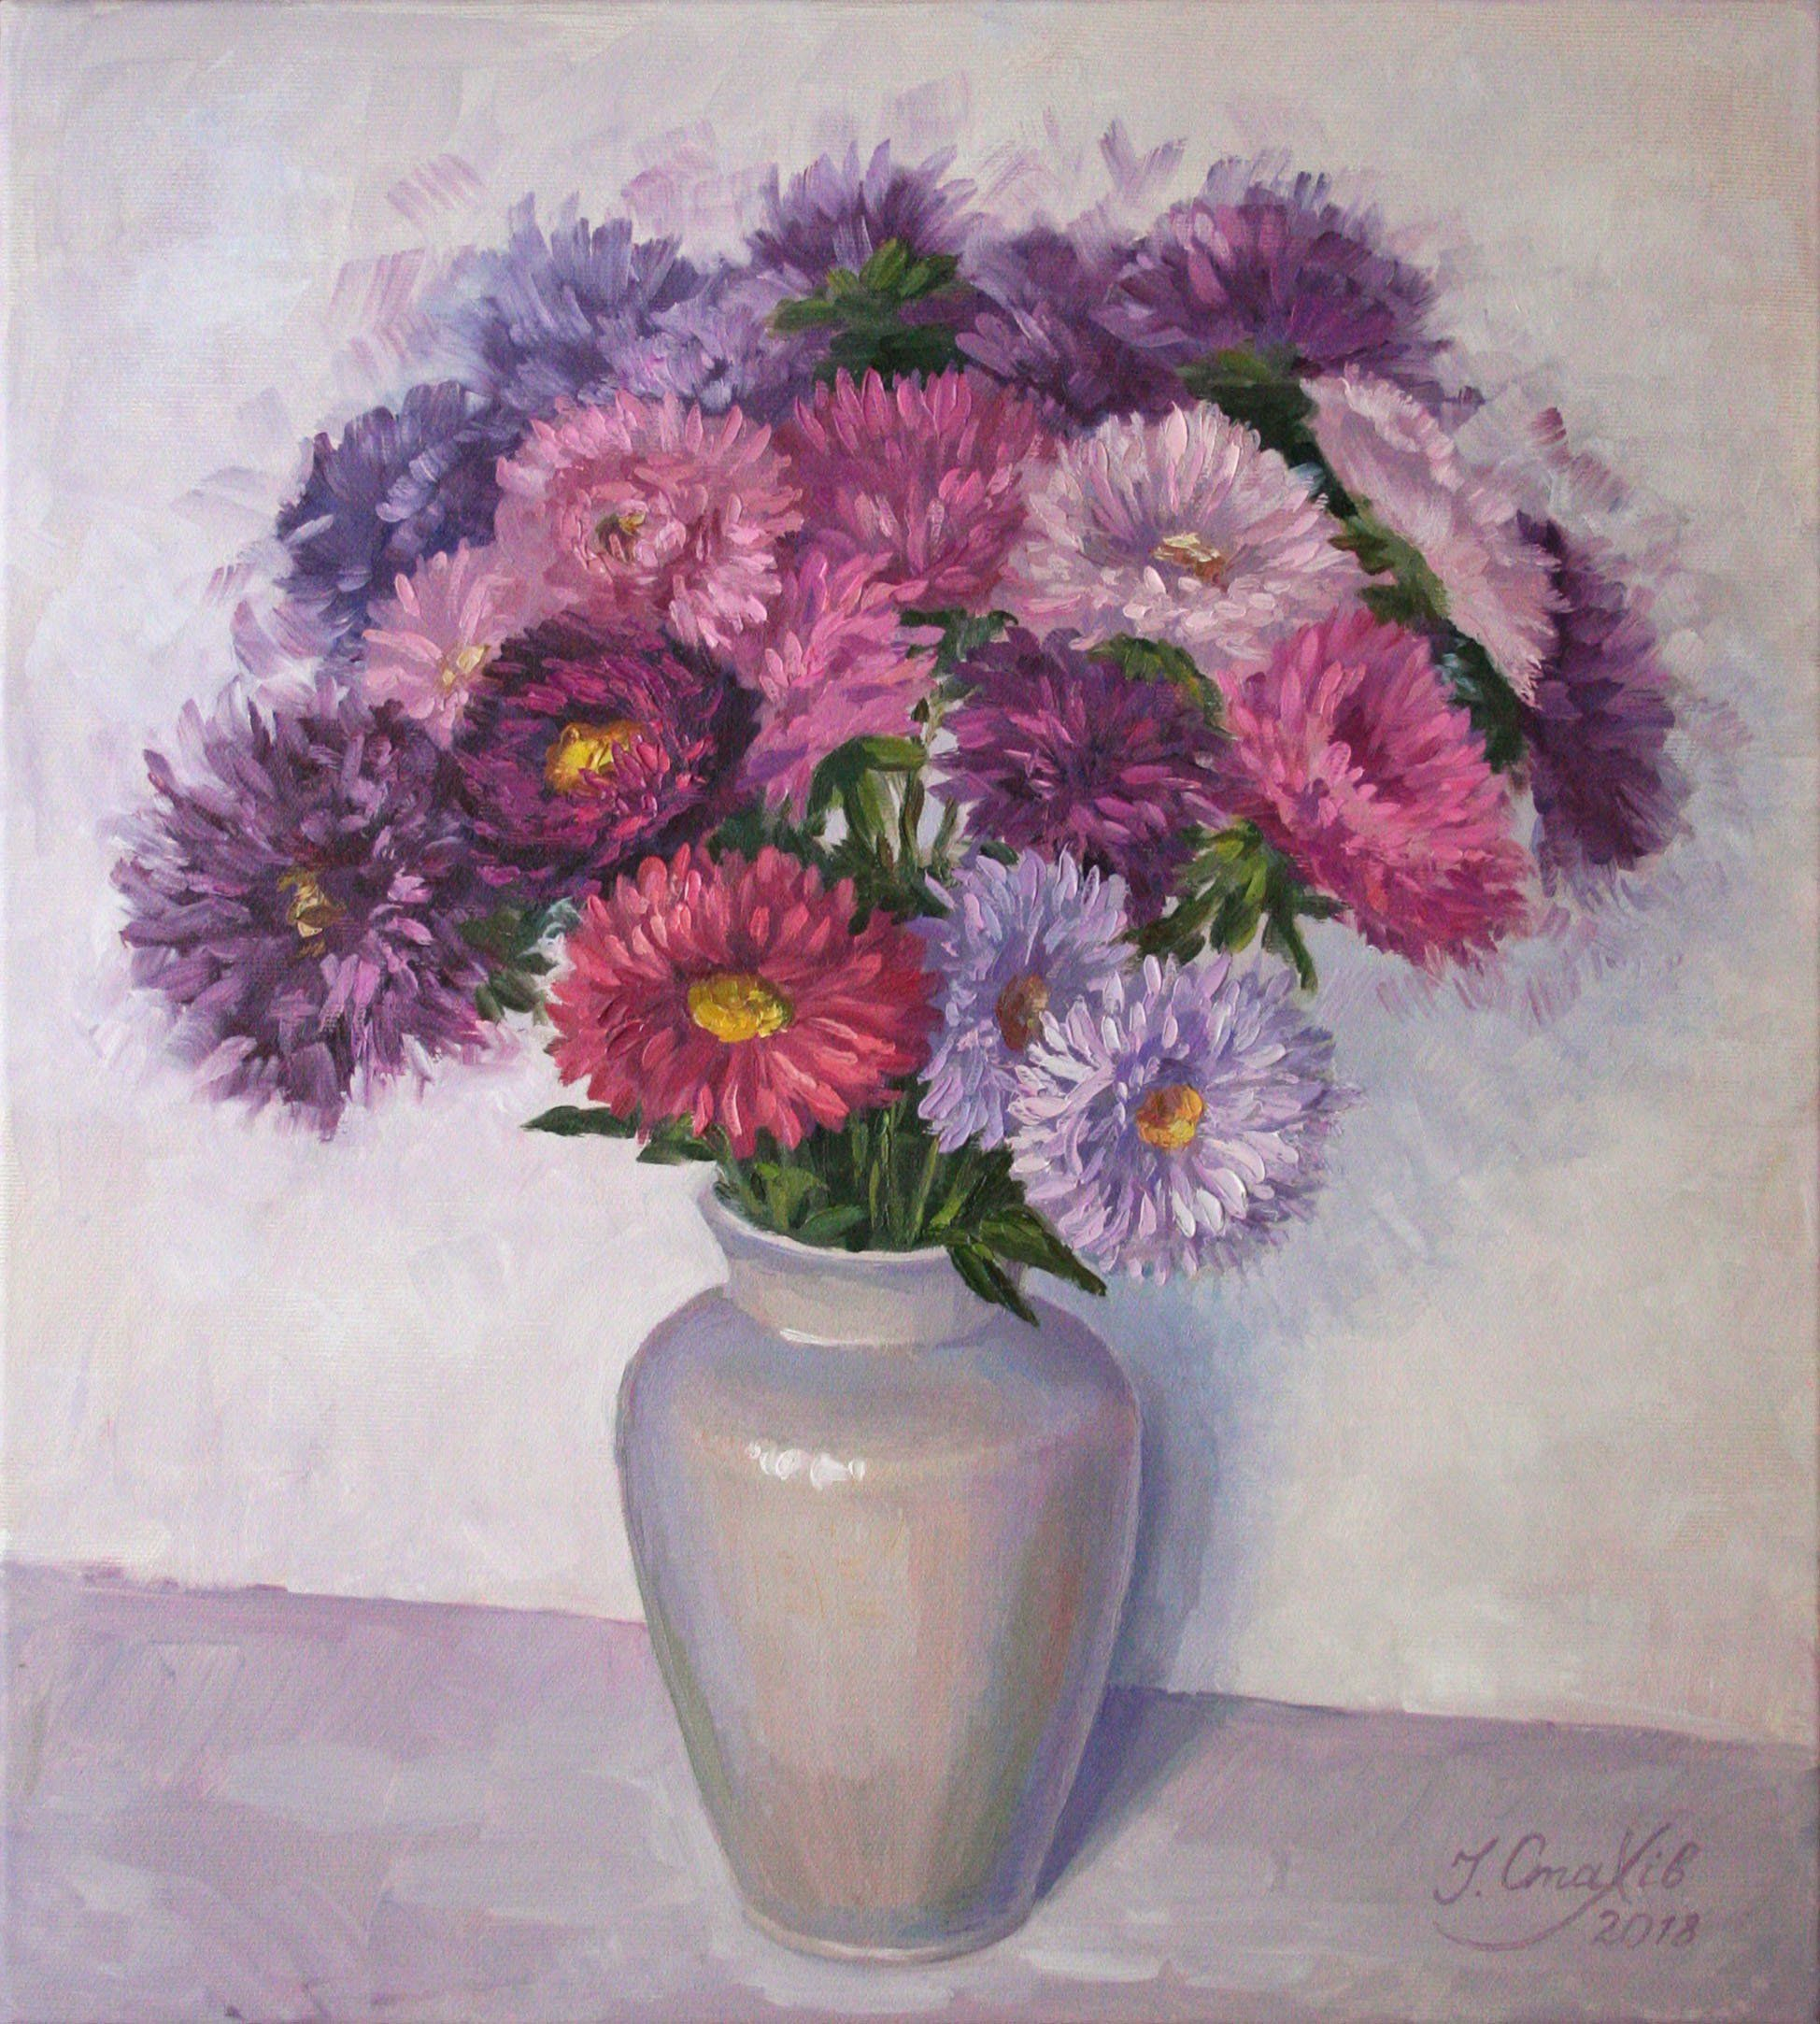 Oil Painting Flowers Bouquet Wall Art Aster Still Life Floral Decor Purple Painting On Canvas Original Artwork Flower Painting Purple Painting Oil Painting Flowers